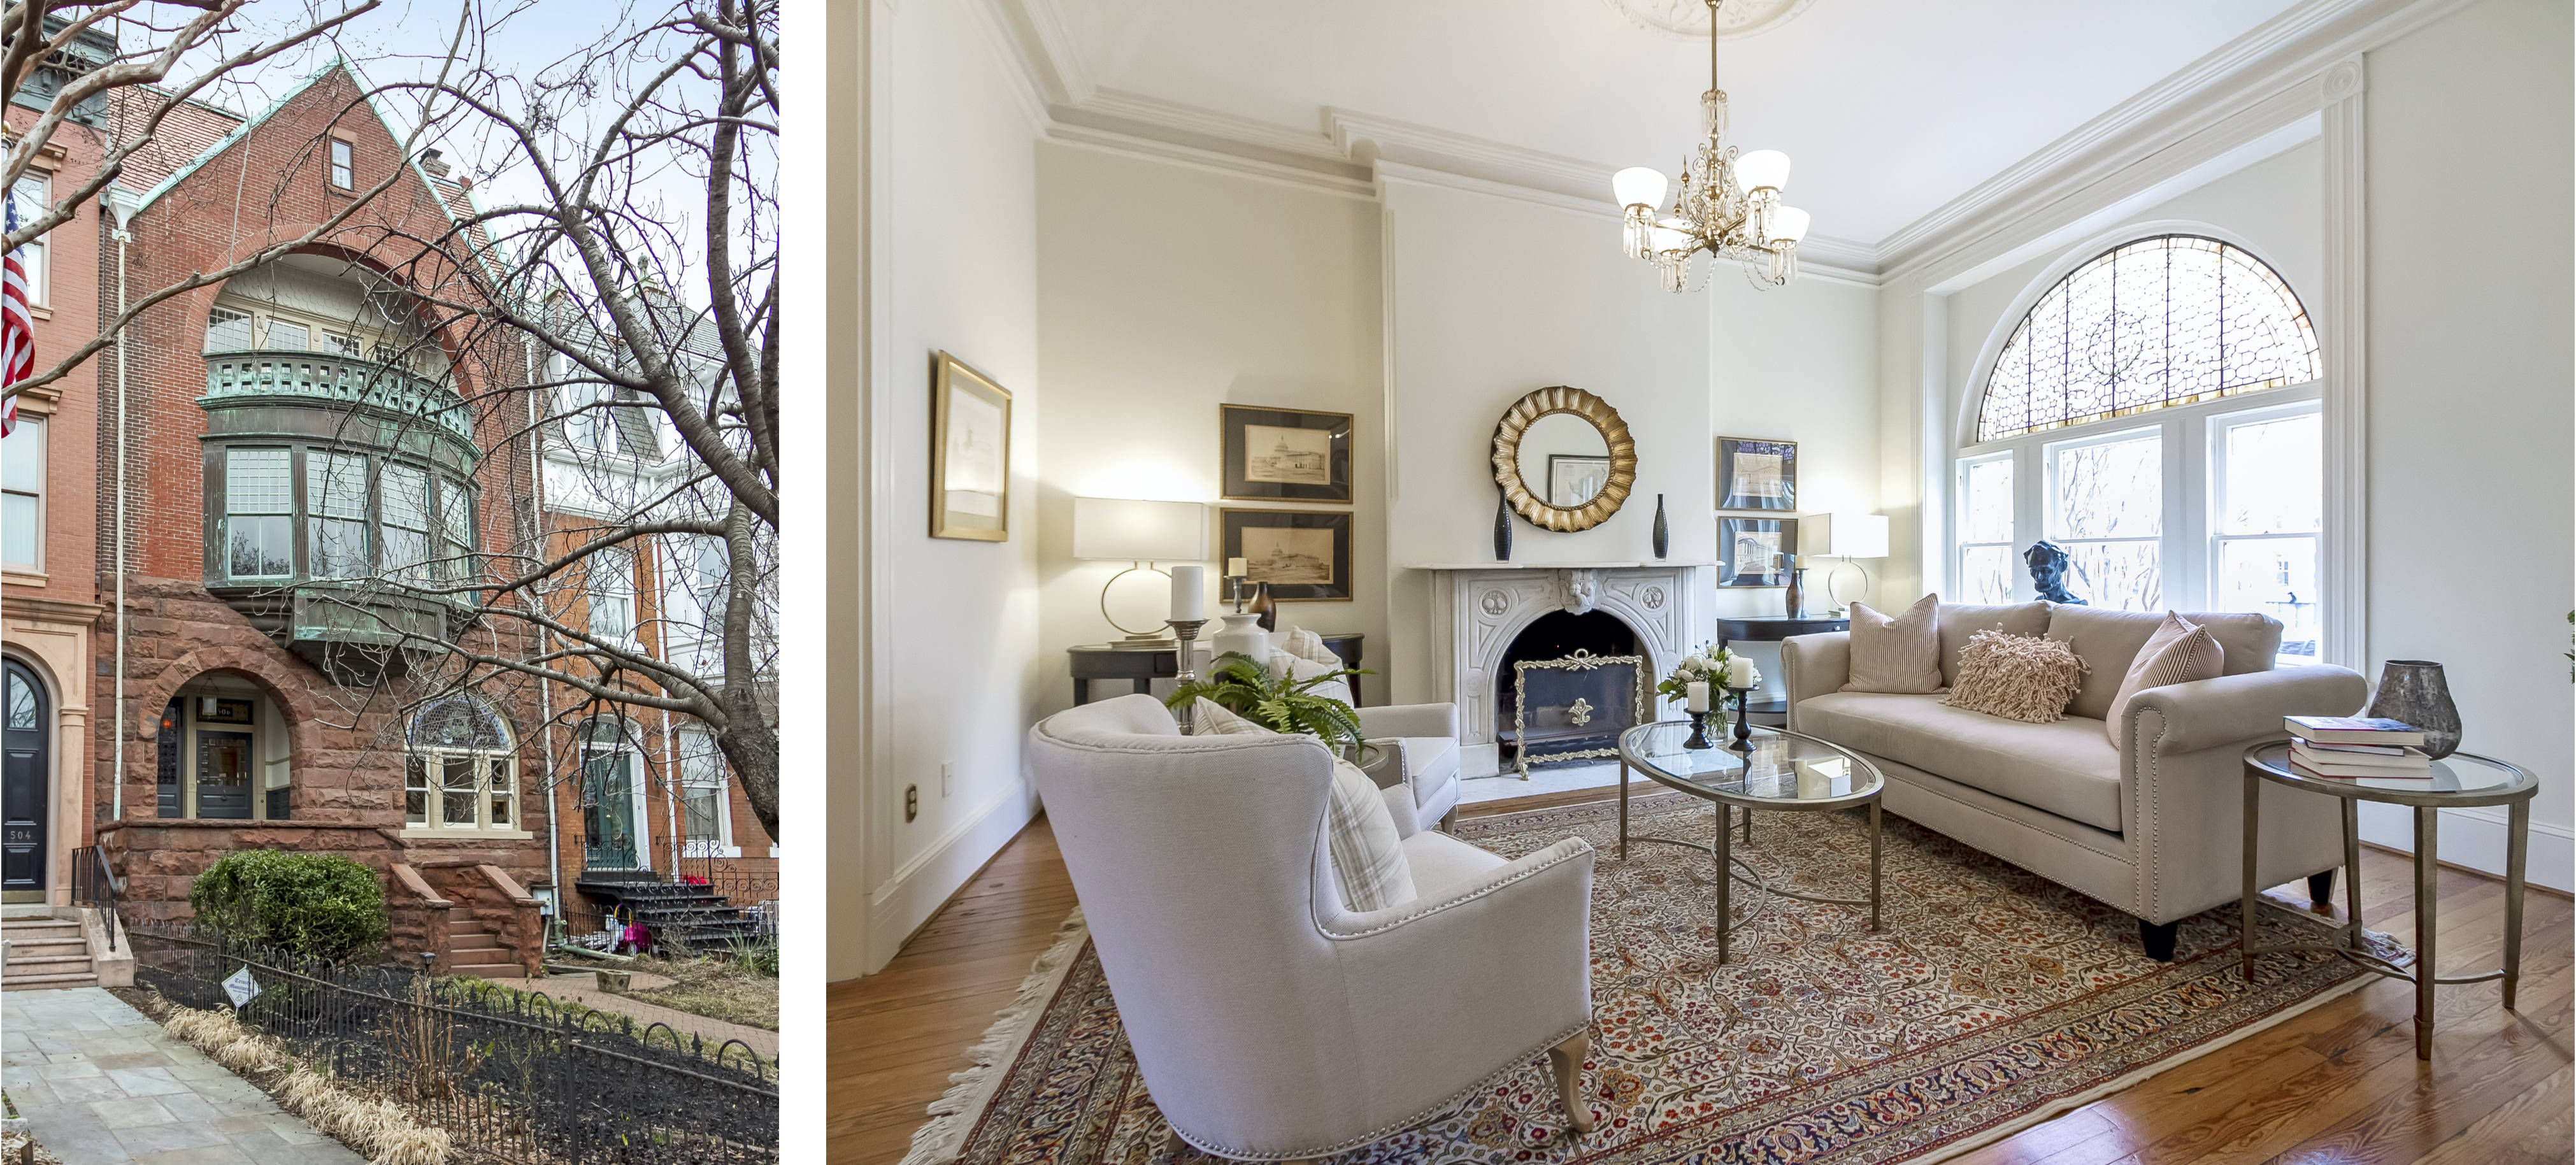 James Swanson's Capitol Hill rowhouse – for sale for about $3.6 million – was elaborately redesigned in the 1880s by Washington architect Robert Stead. (Chris Zimmer/Urban Capitol Photography)